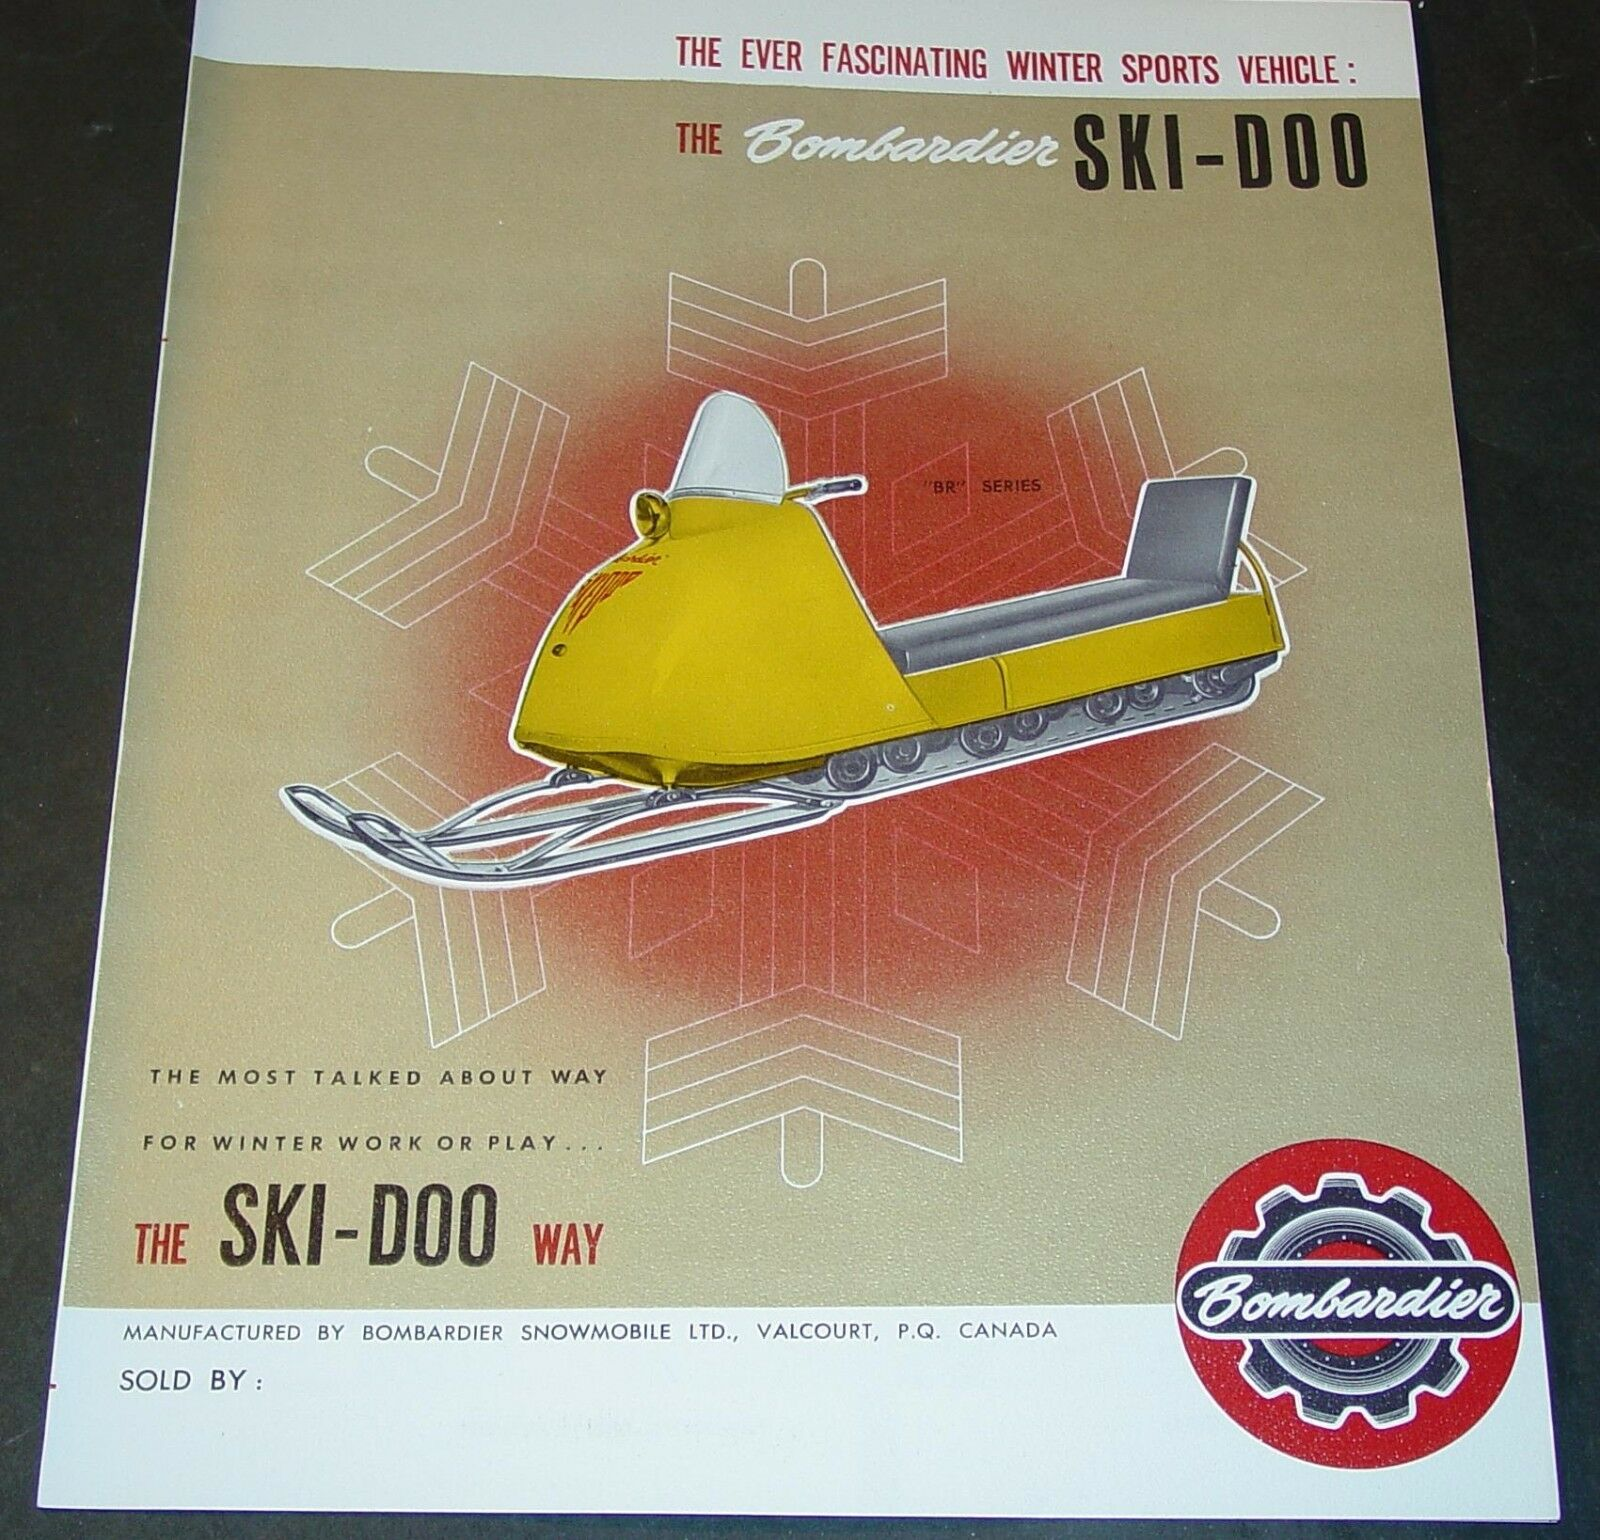 RARE VINTAGE 1964  SKI-DOO SNOWMOBILE SALES BROCHURE 4 PAGES VERY NICE  (984)  online shopping and fashion store